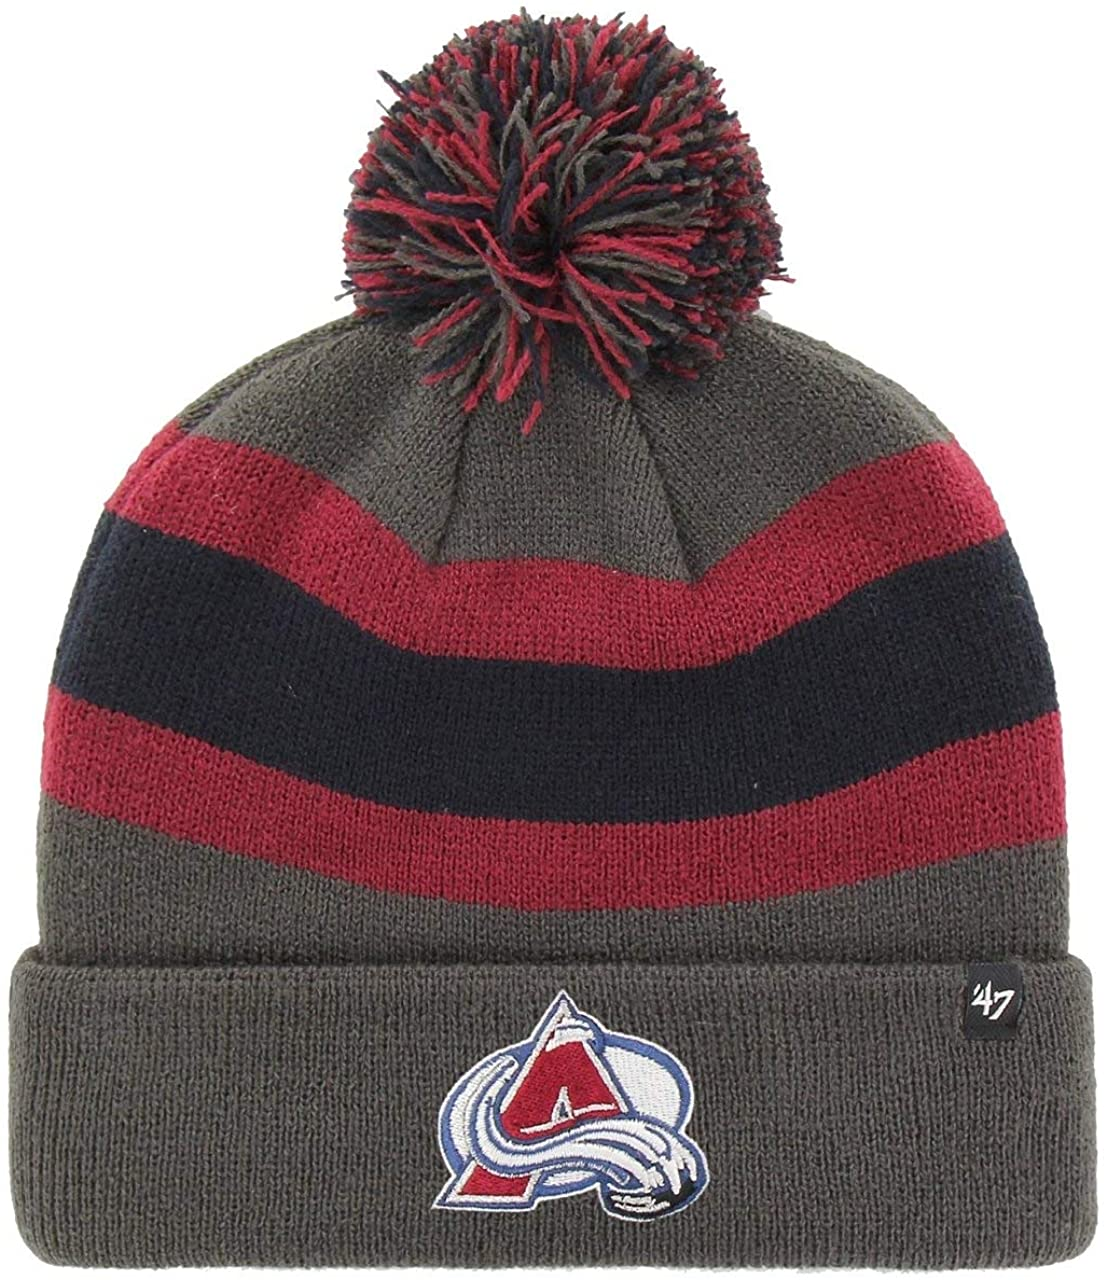 '47 Brand Colorado Avalanche NHL Charcoal Breakaway Cuff Knit Beany Hat One Size Mütze Forty Seven